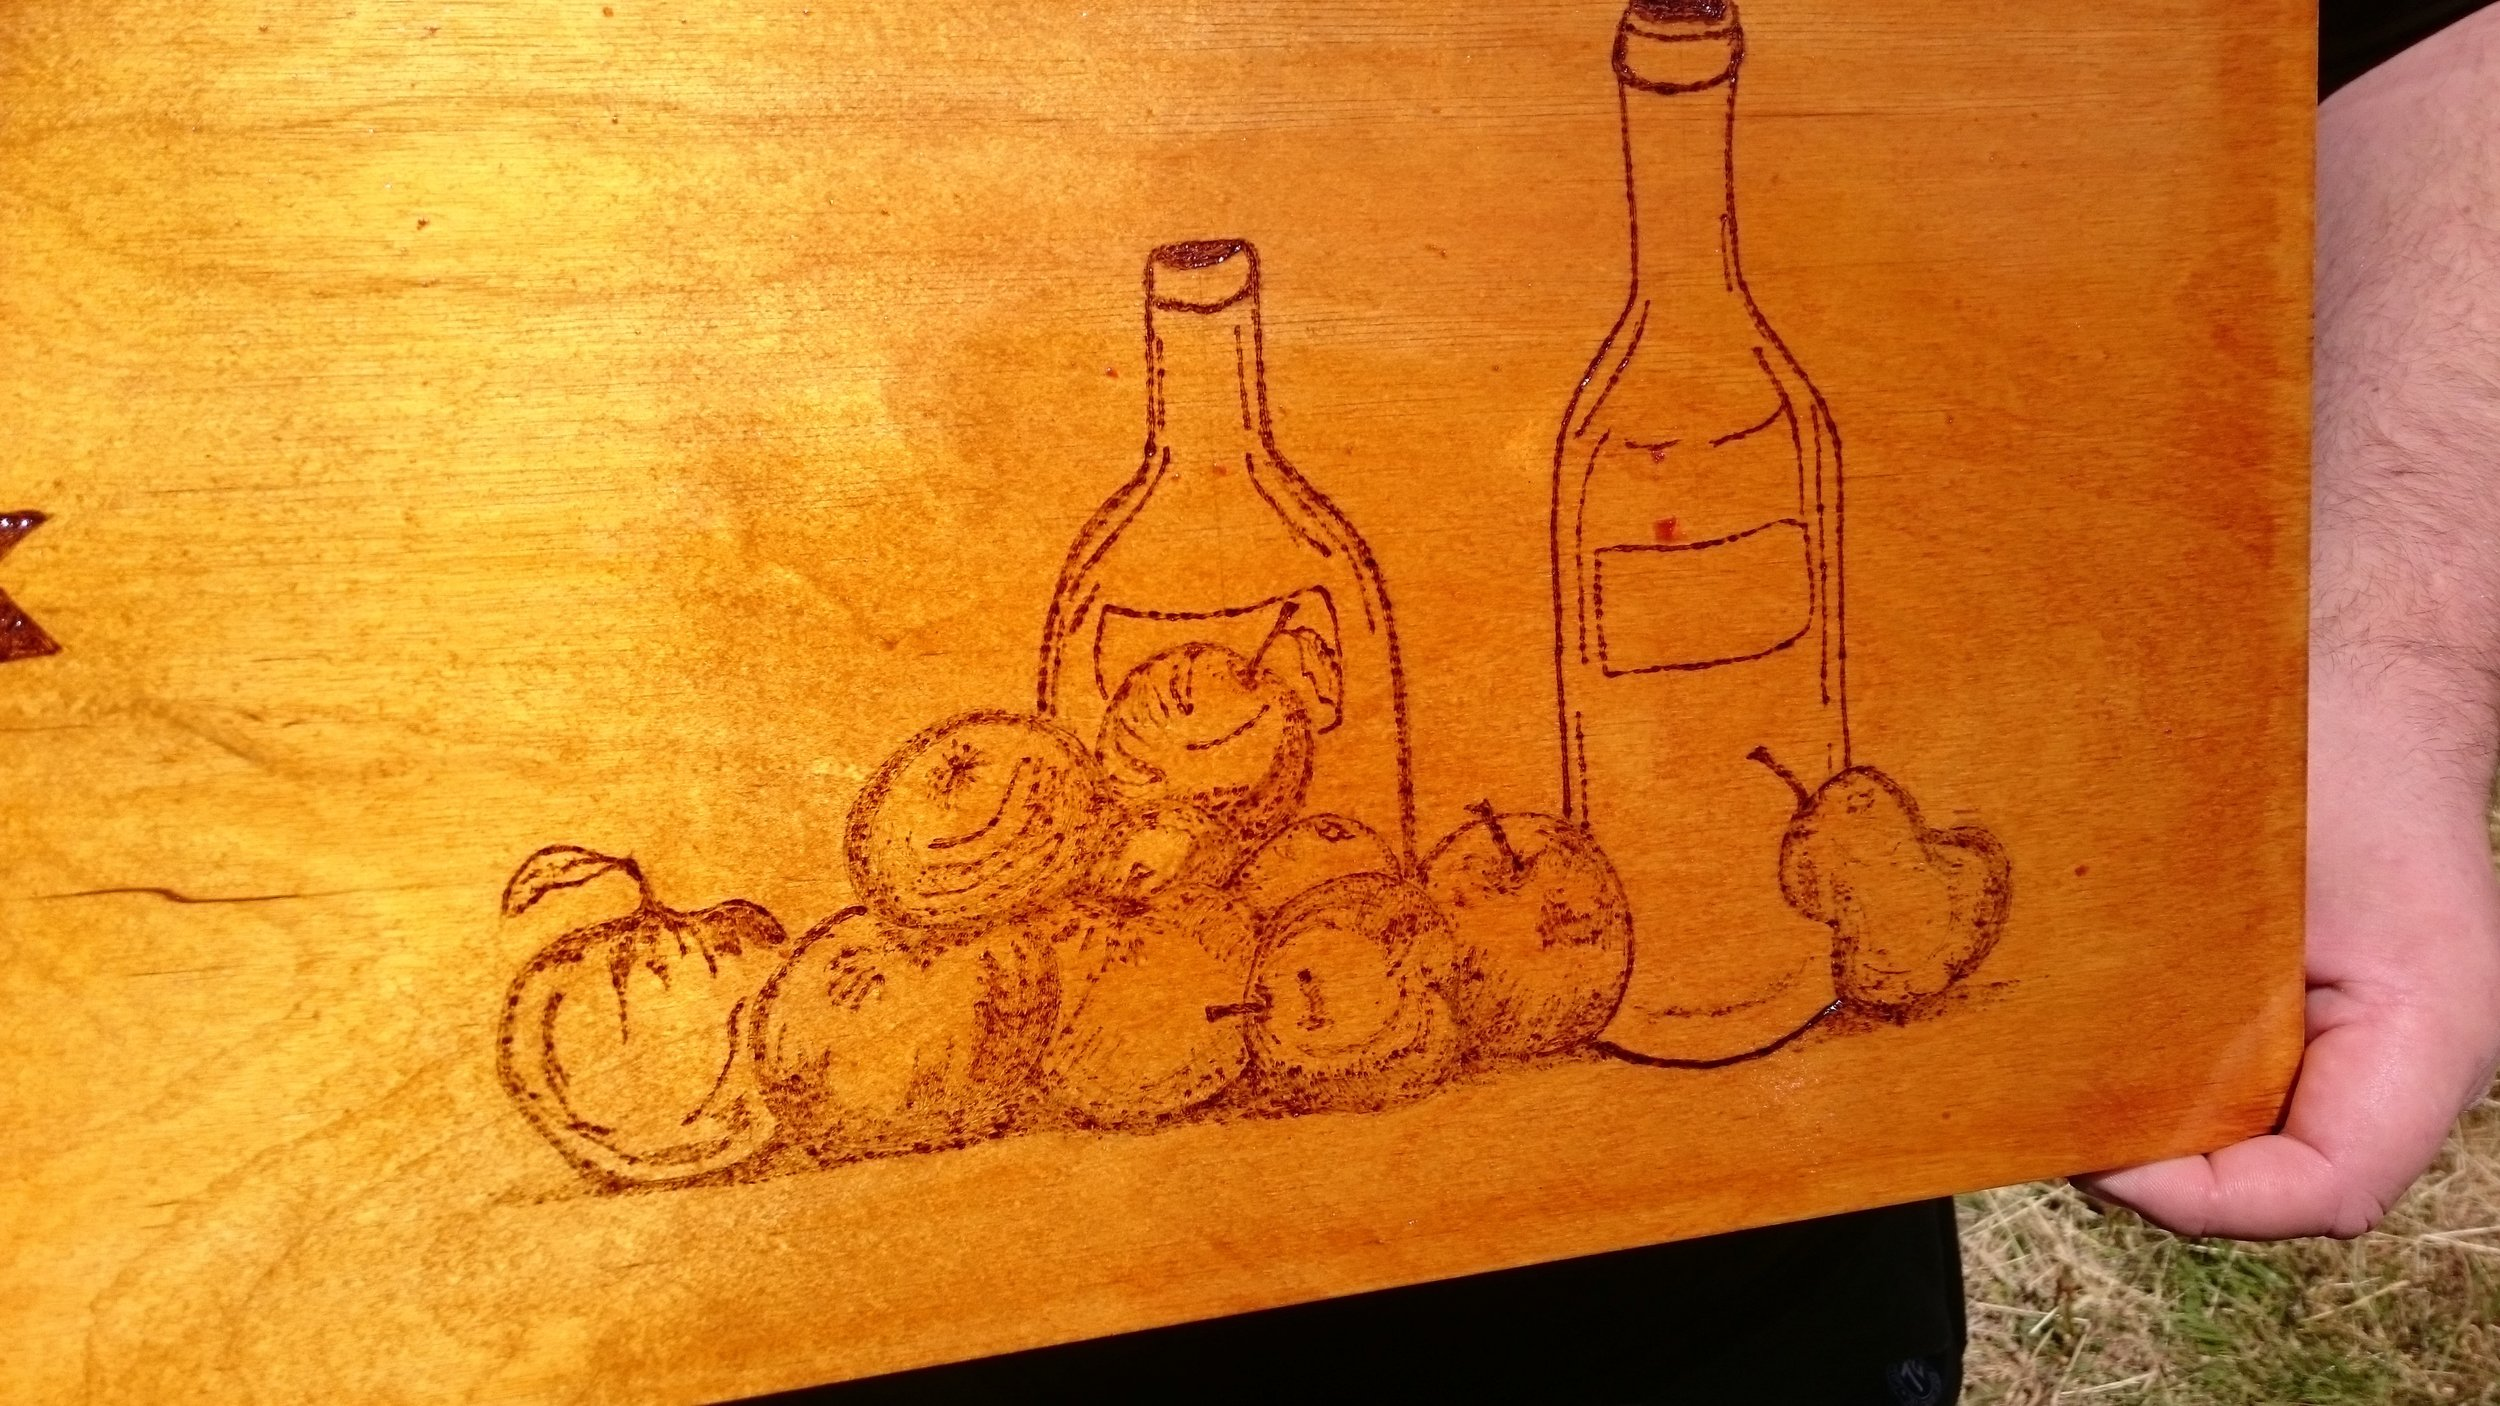 Apple and juice bottle detail